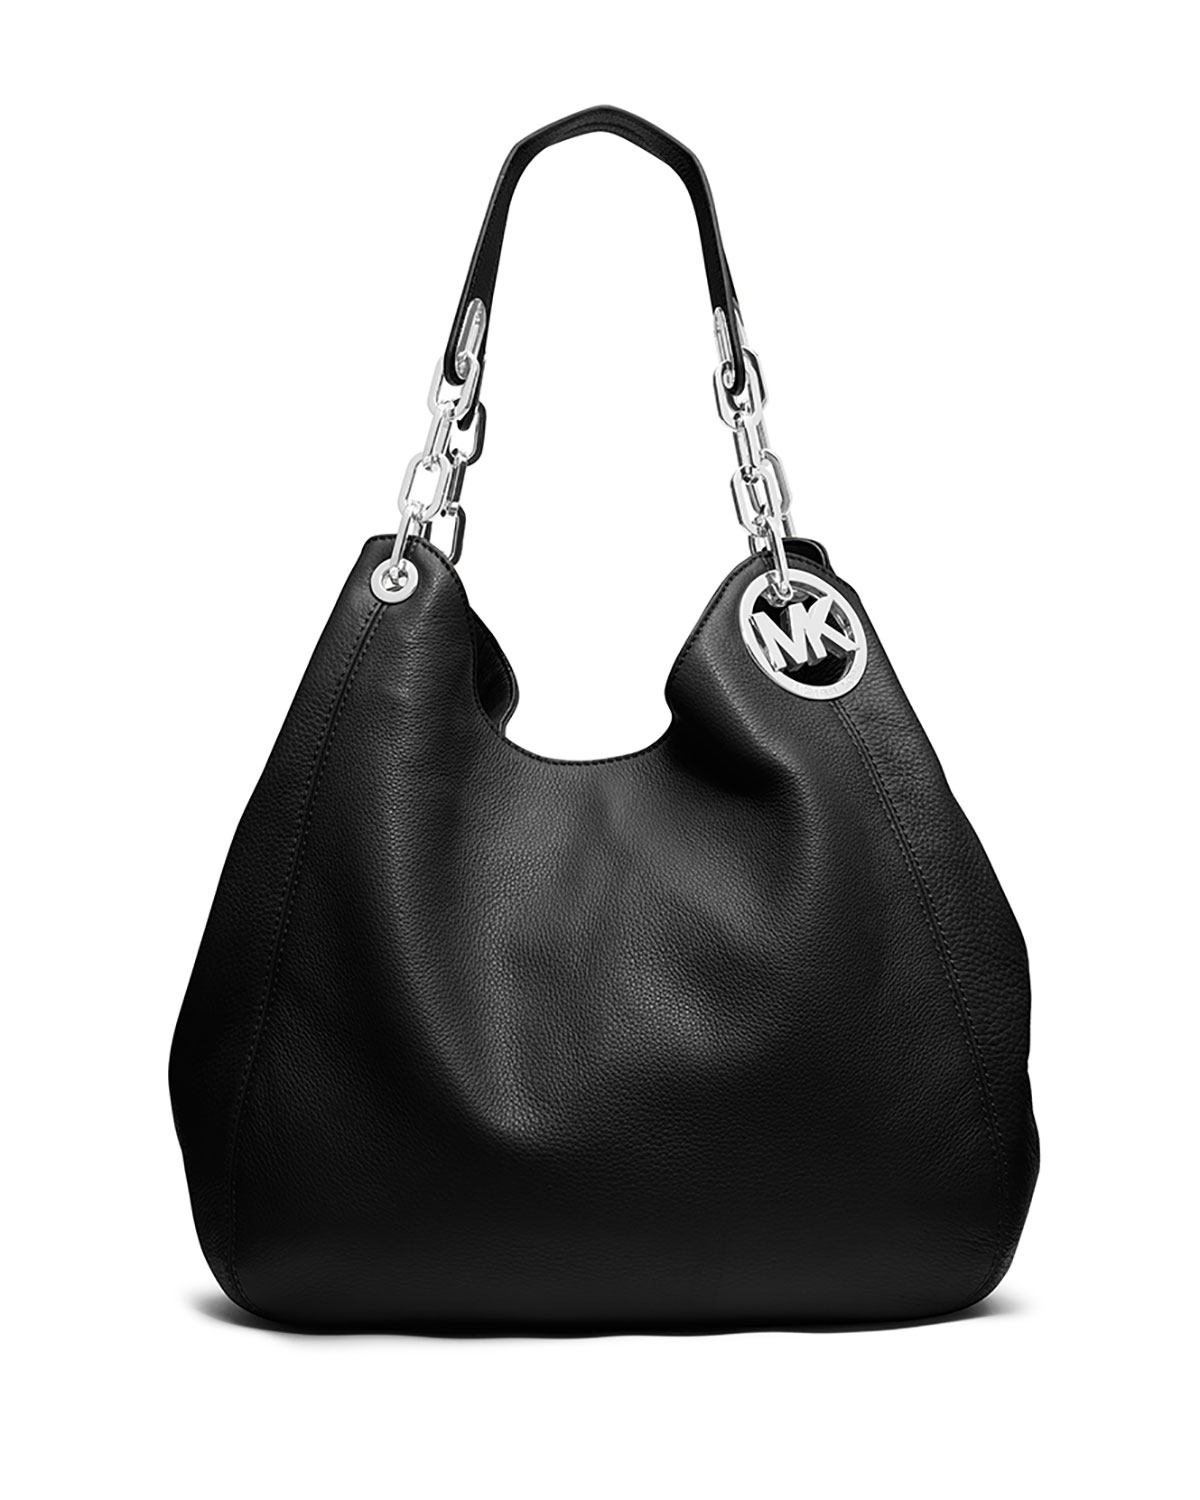 744ec65116e4 MICHAEL Michael Kors Fulton Large Leather Shoulder Tote Bag | Neiman ...